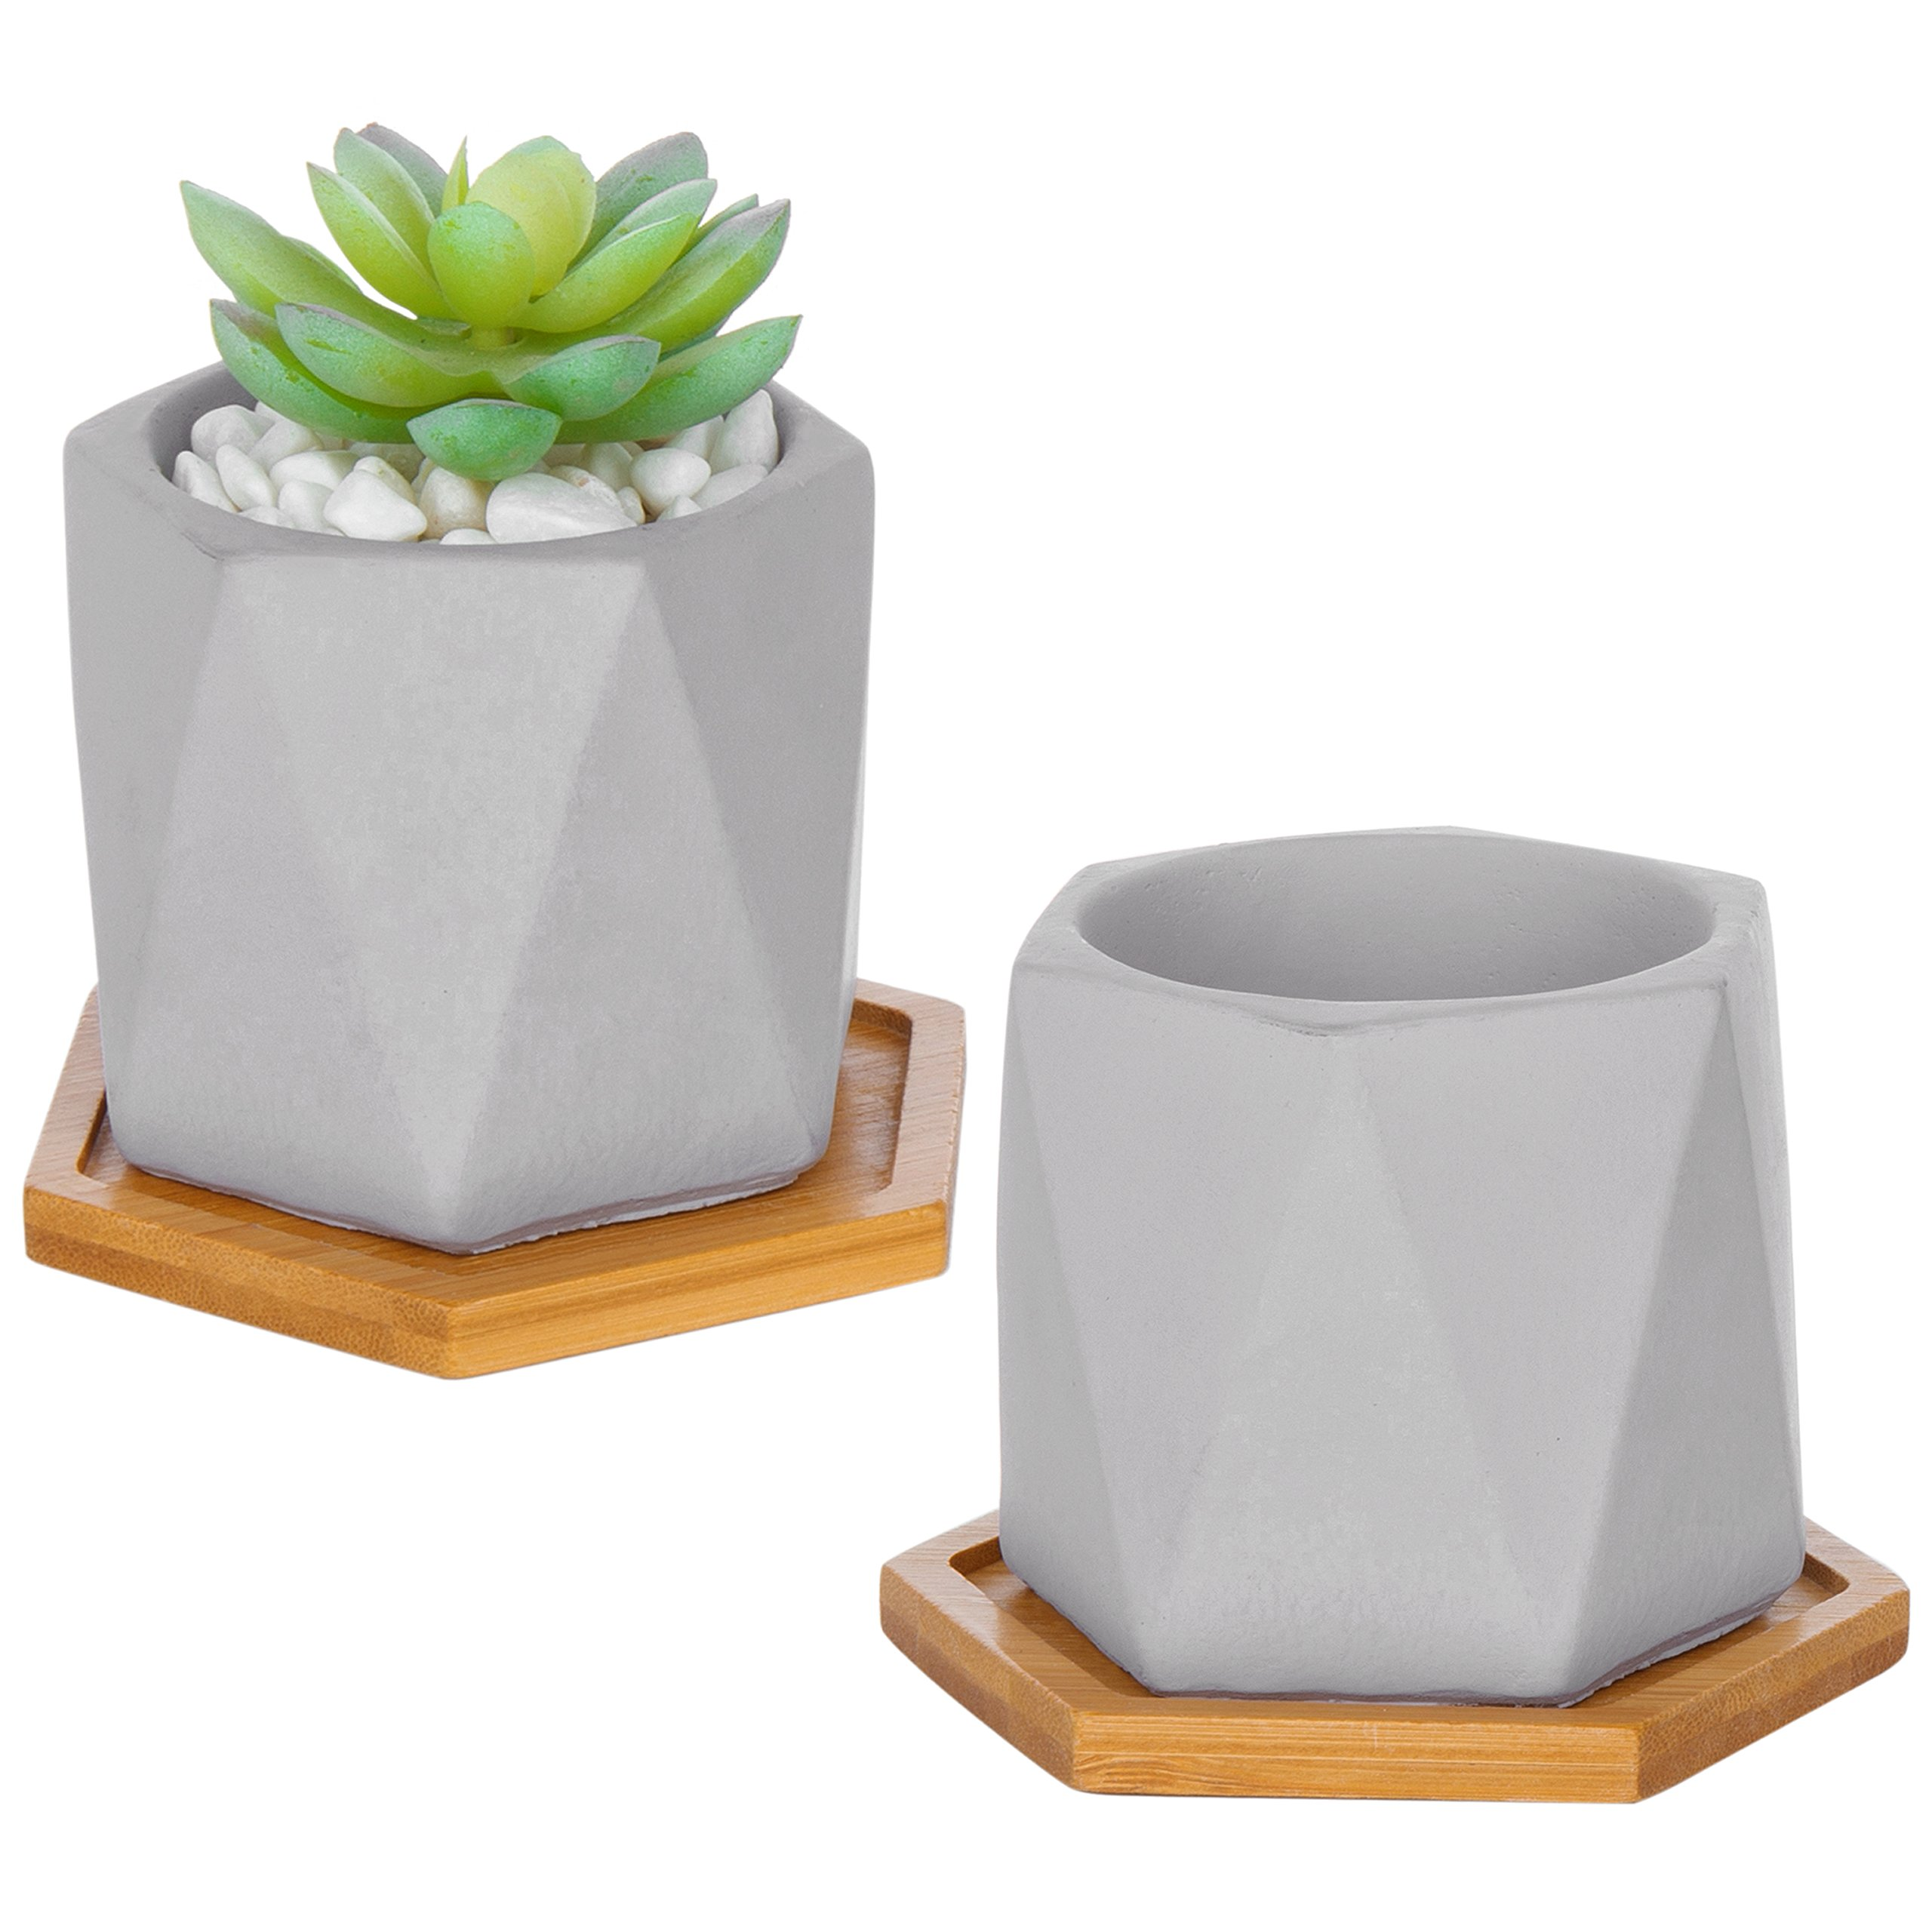 MyGift Geometric Cement Grey Succulent Planter Pots with Bamboo Drip Trays, Set of 2